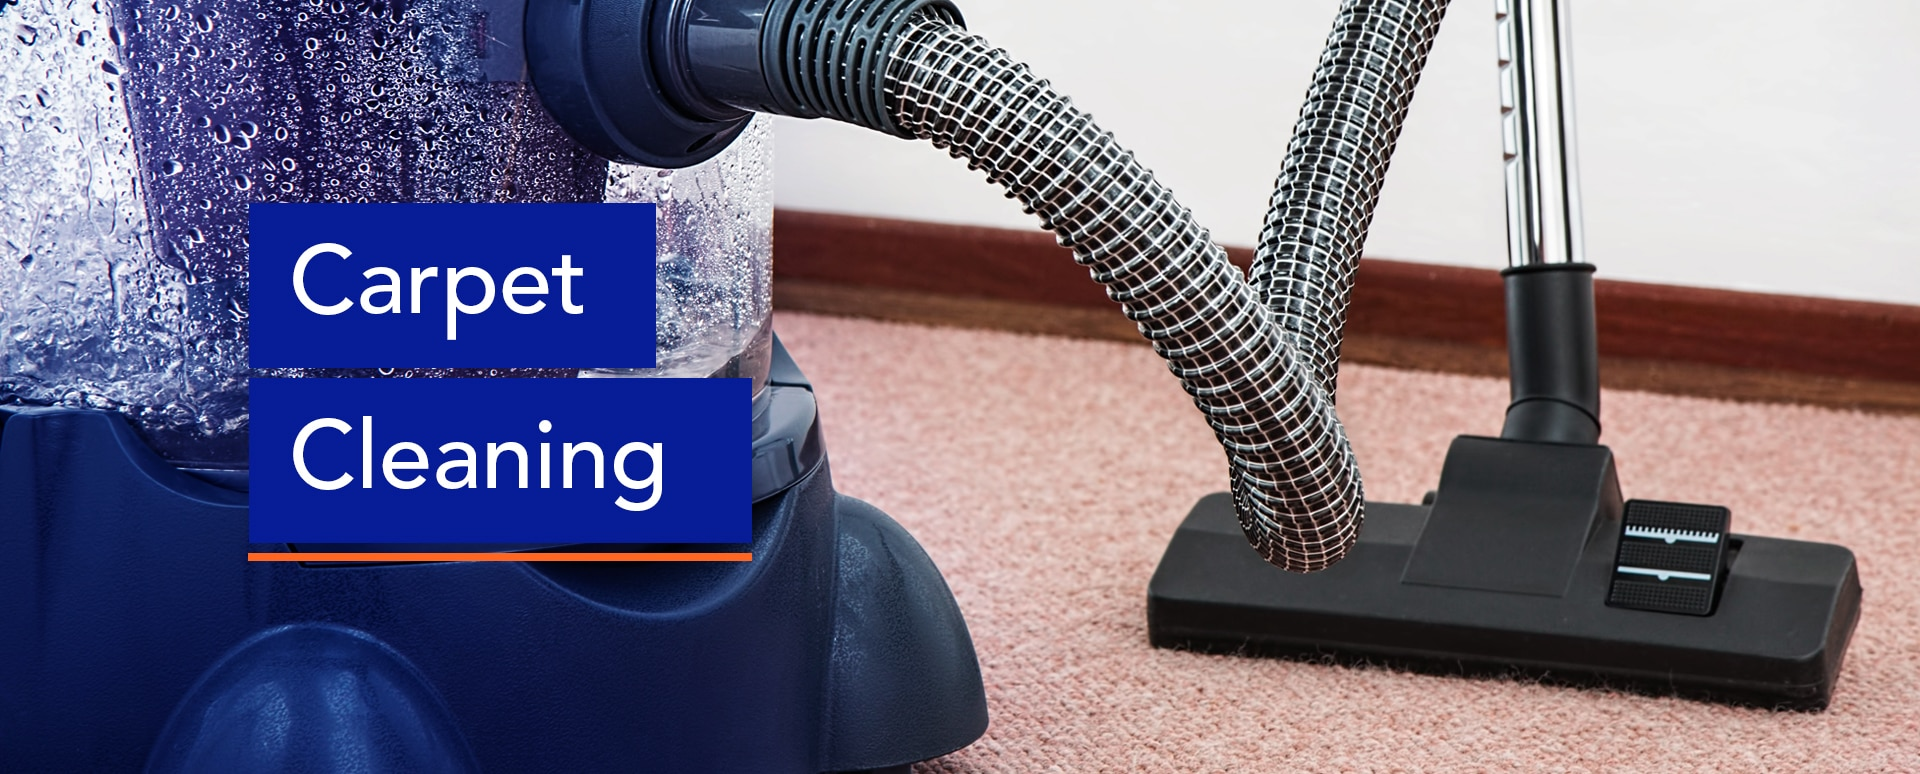 Fresh and clean carpet best option to move with carpet cleaning Adelaide